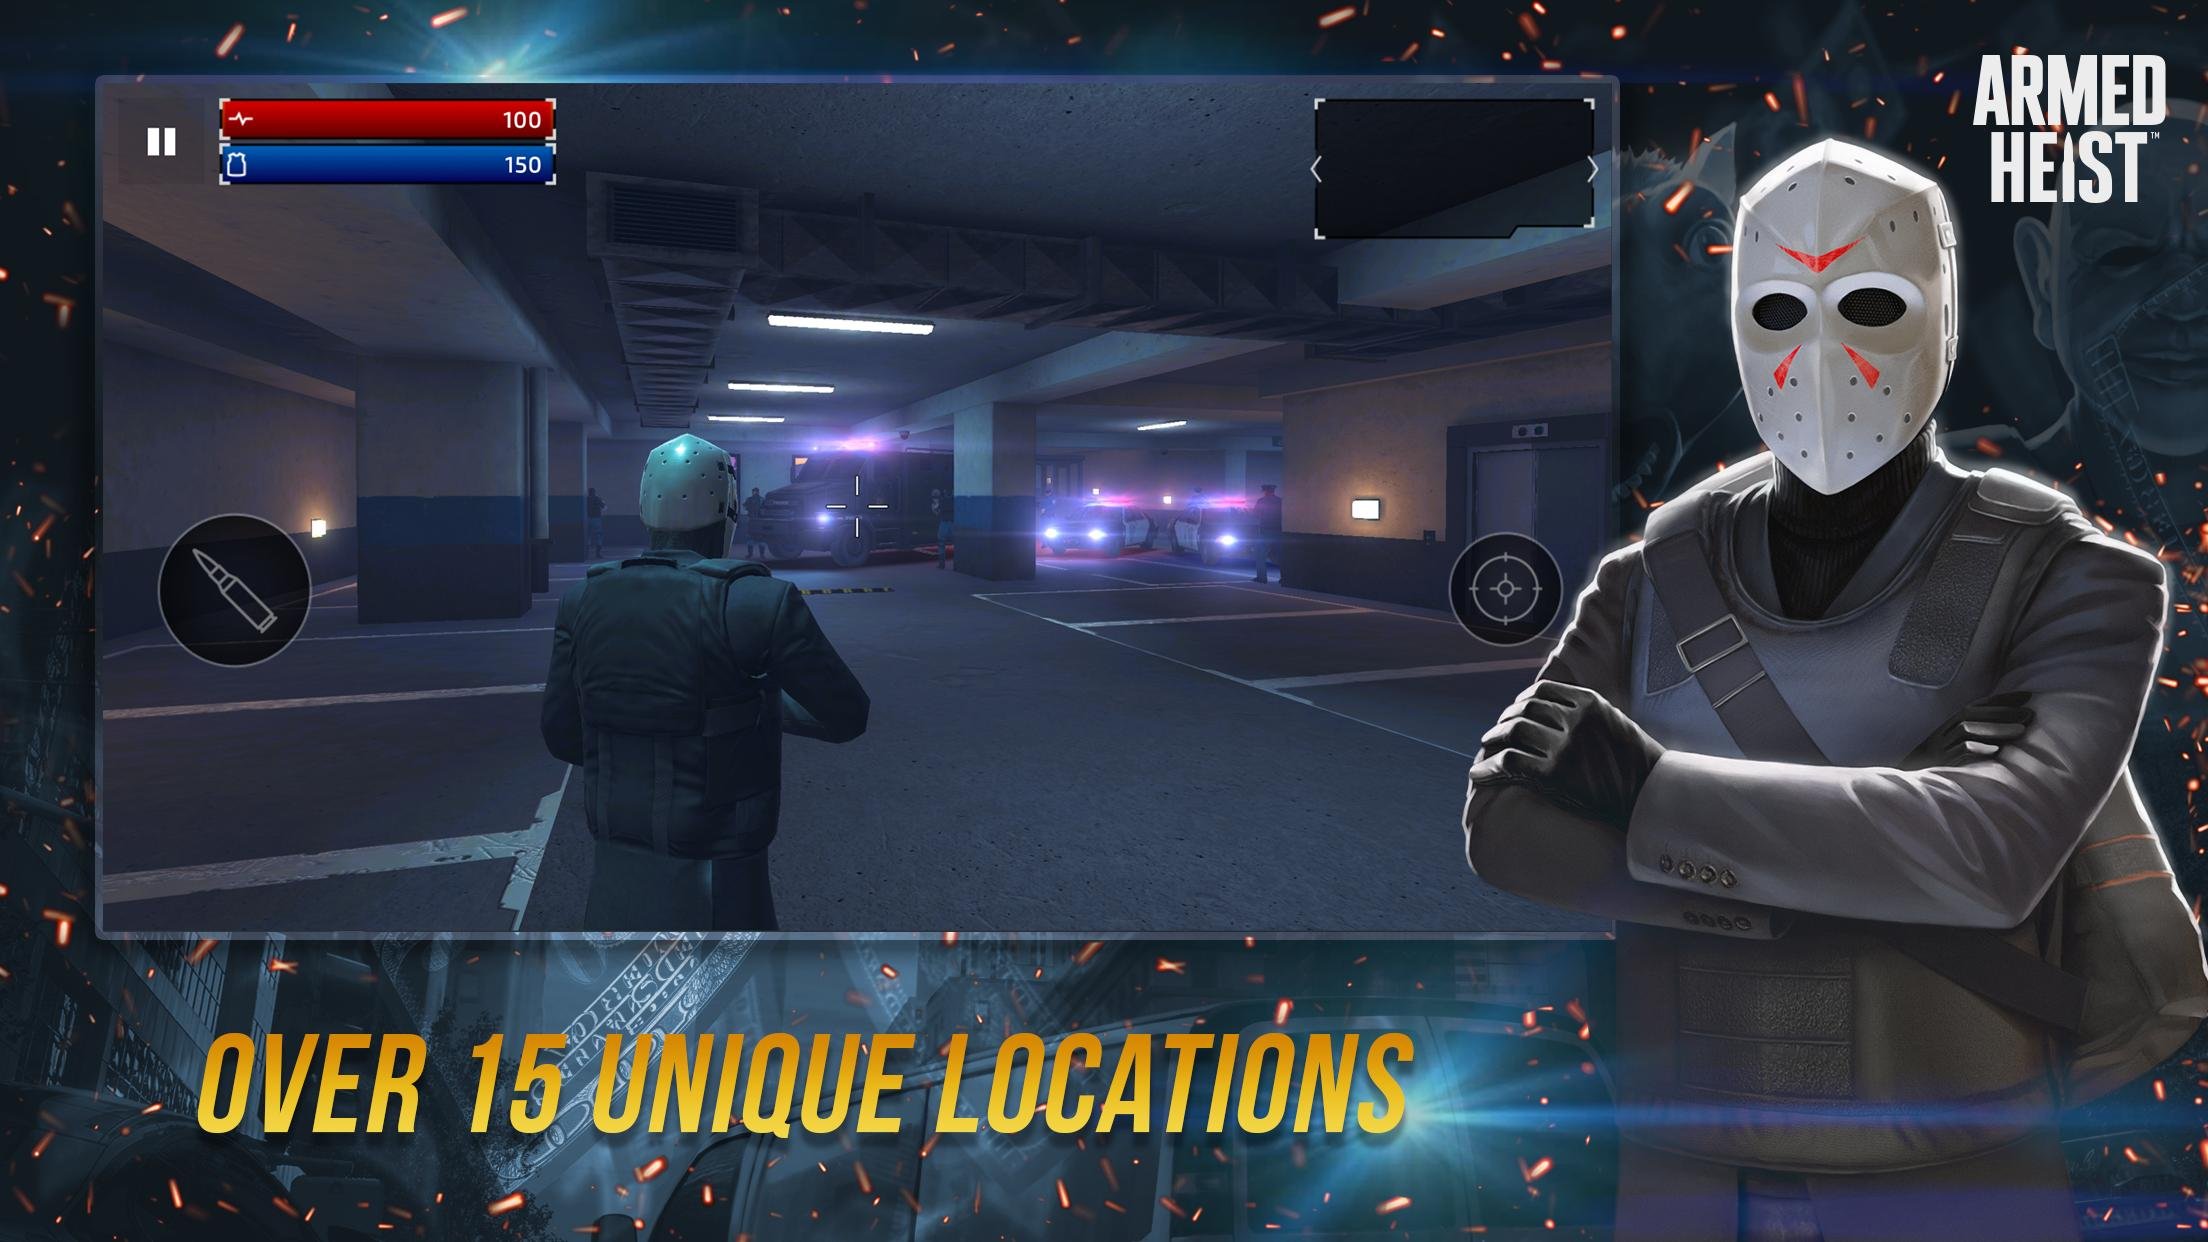 Armed Heist TPS 3D Sniper shooting gun games 2.1.1 Screenshot 17